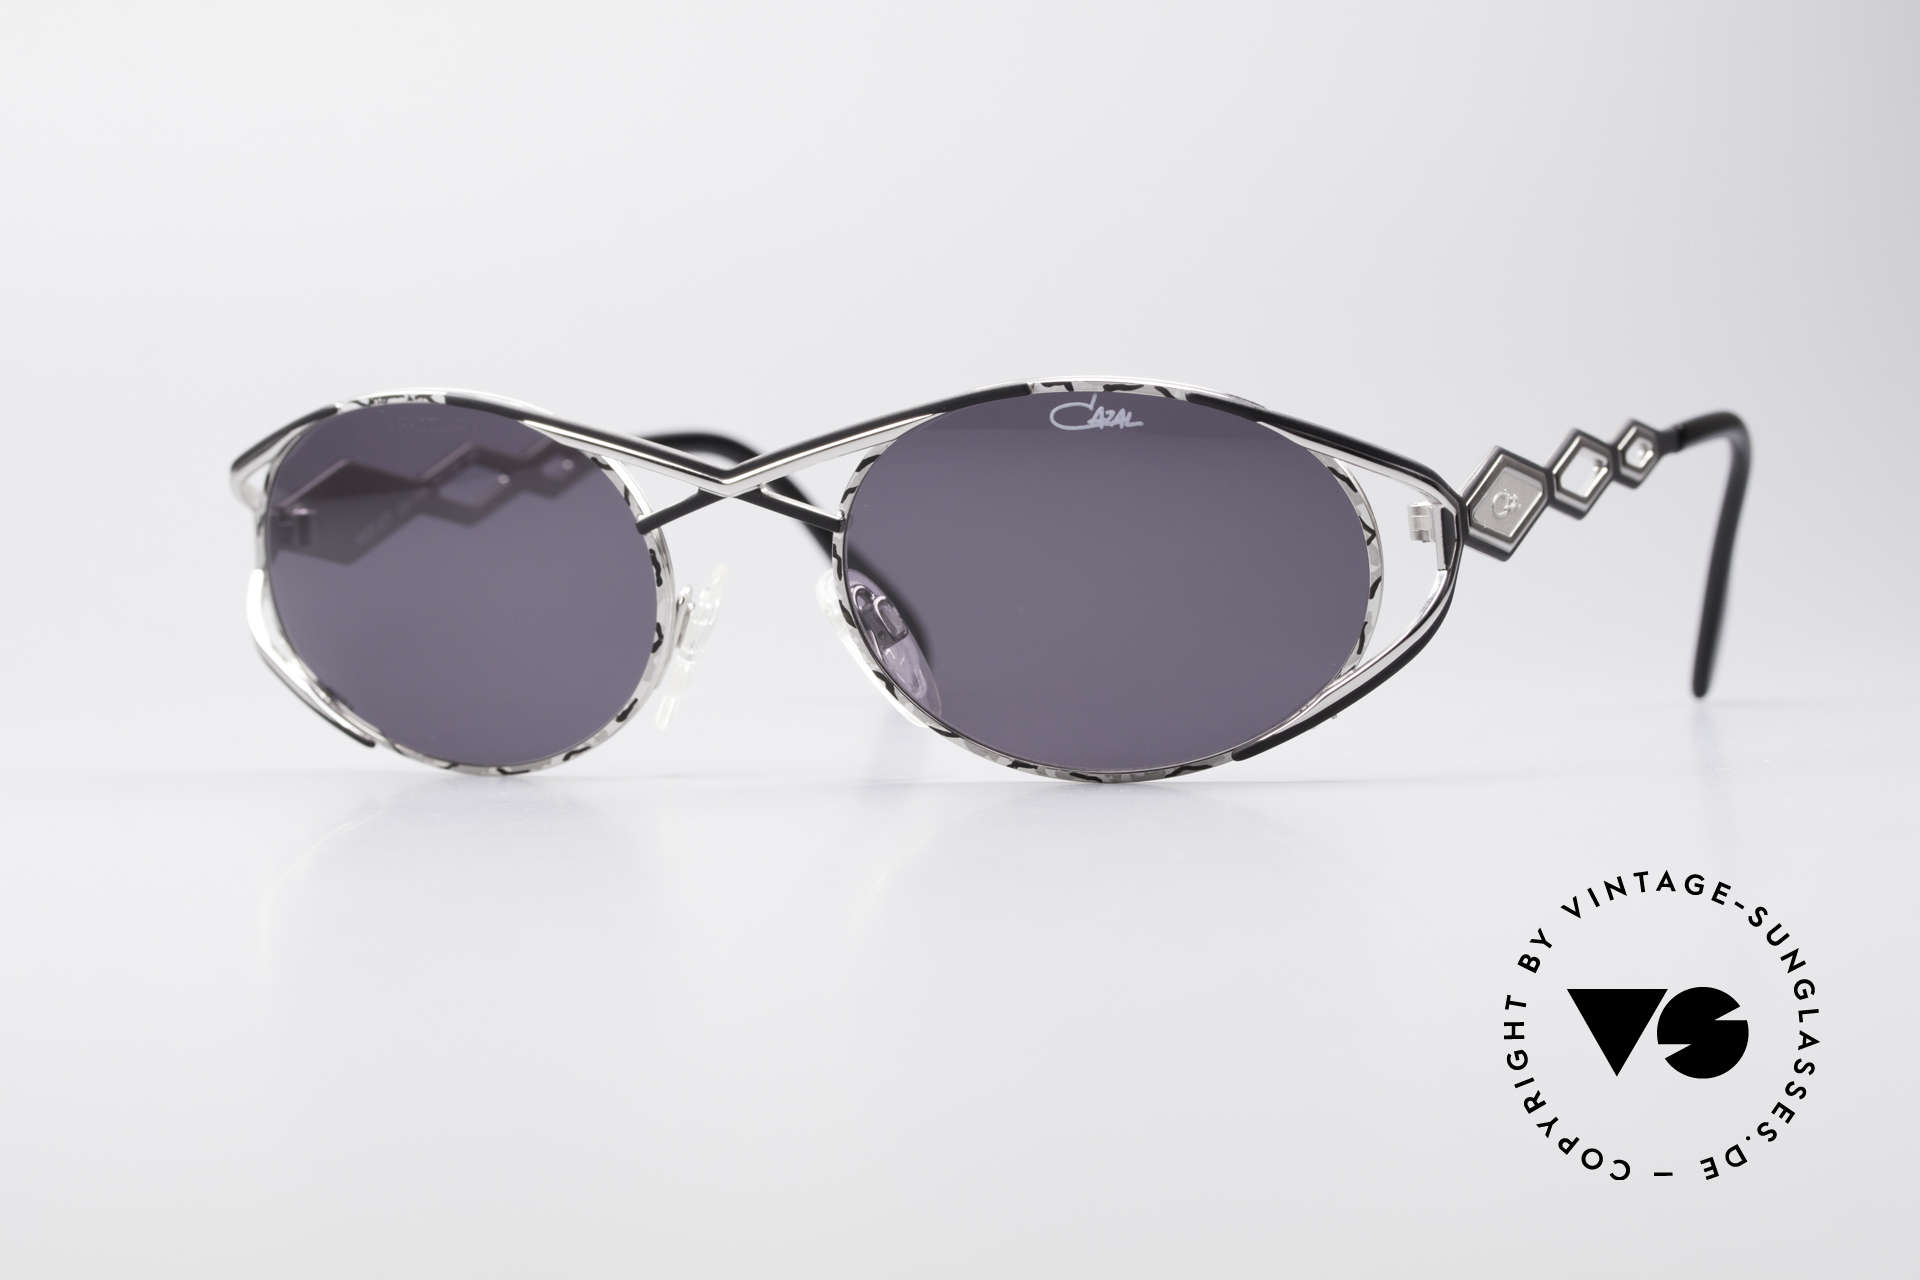 Cazal 977 Vintage 90s Sunglasses Ladies, luxury vintage Cazal sunglasses from the late 1990's, Made for Women